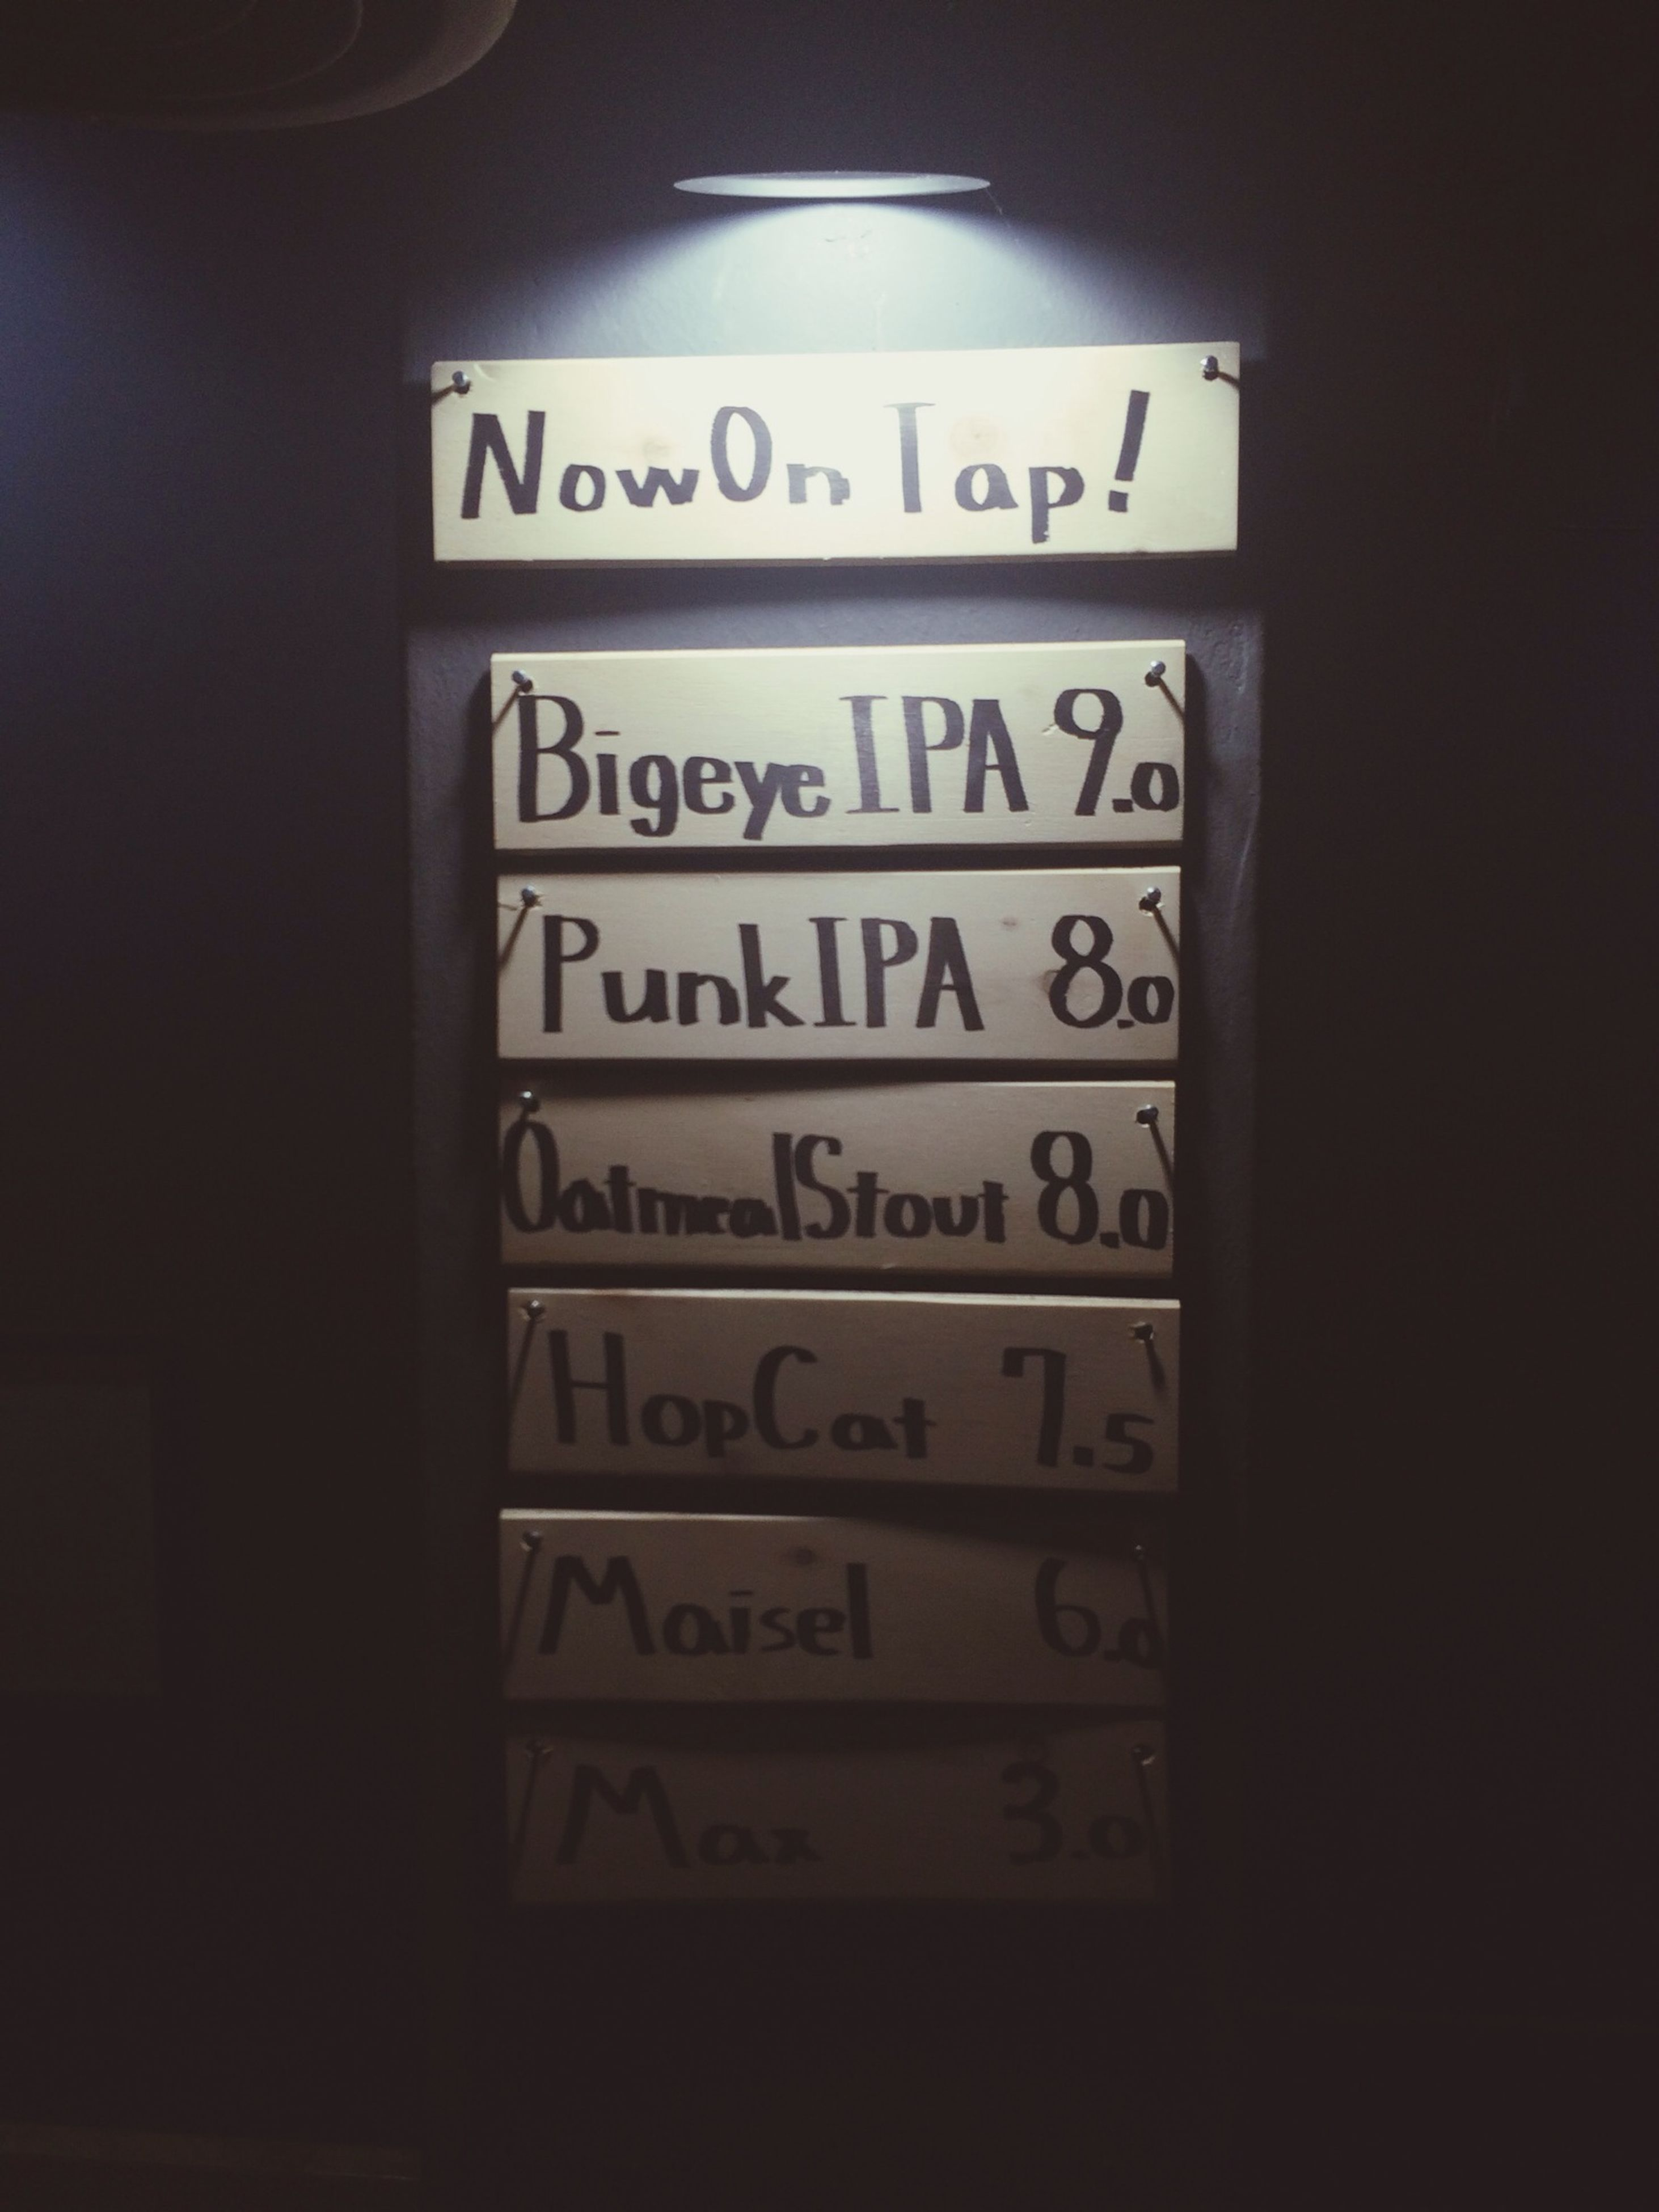 indoors, text, communication, western script, number, close-up, technology, non-western script, capital letter, no people, wall - building feature, connection, information, illuminated, old-fashioned, information sign, wall, clock, time, copy space